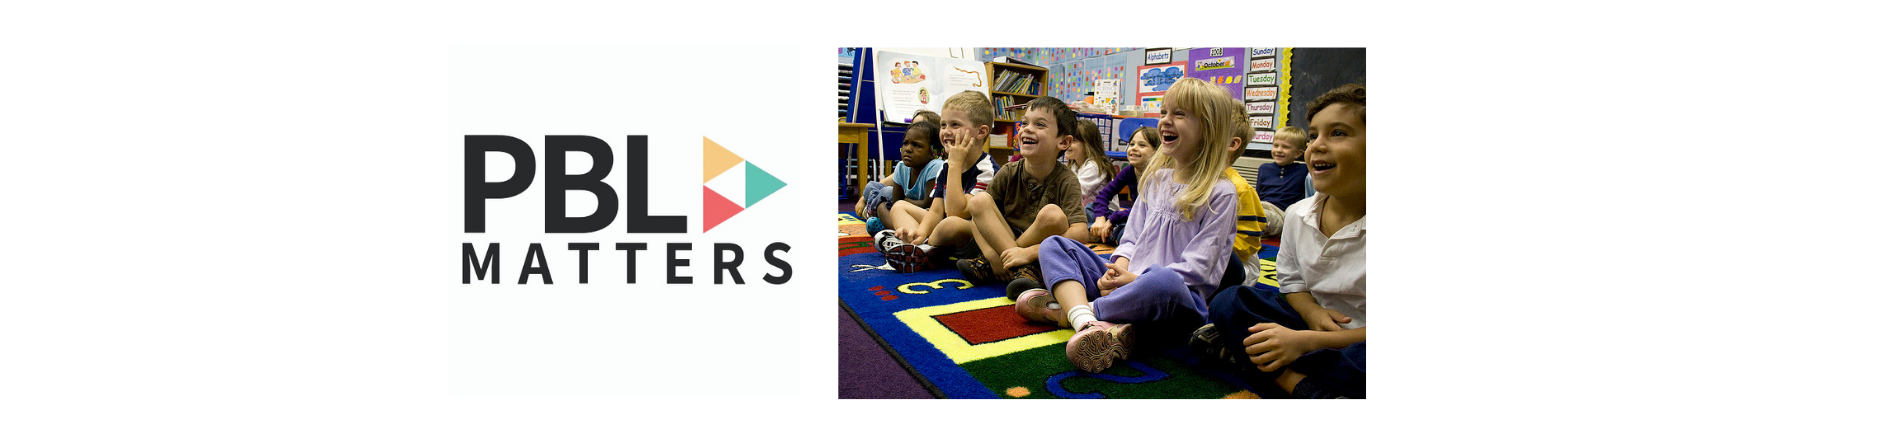 PBLMatters Logo and a picture of happy students sitting on the floor.